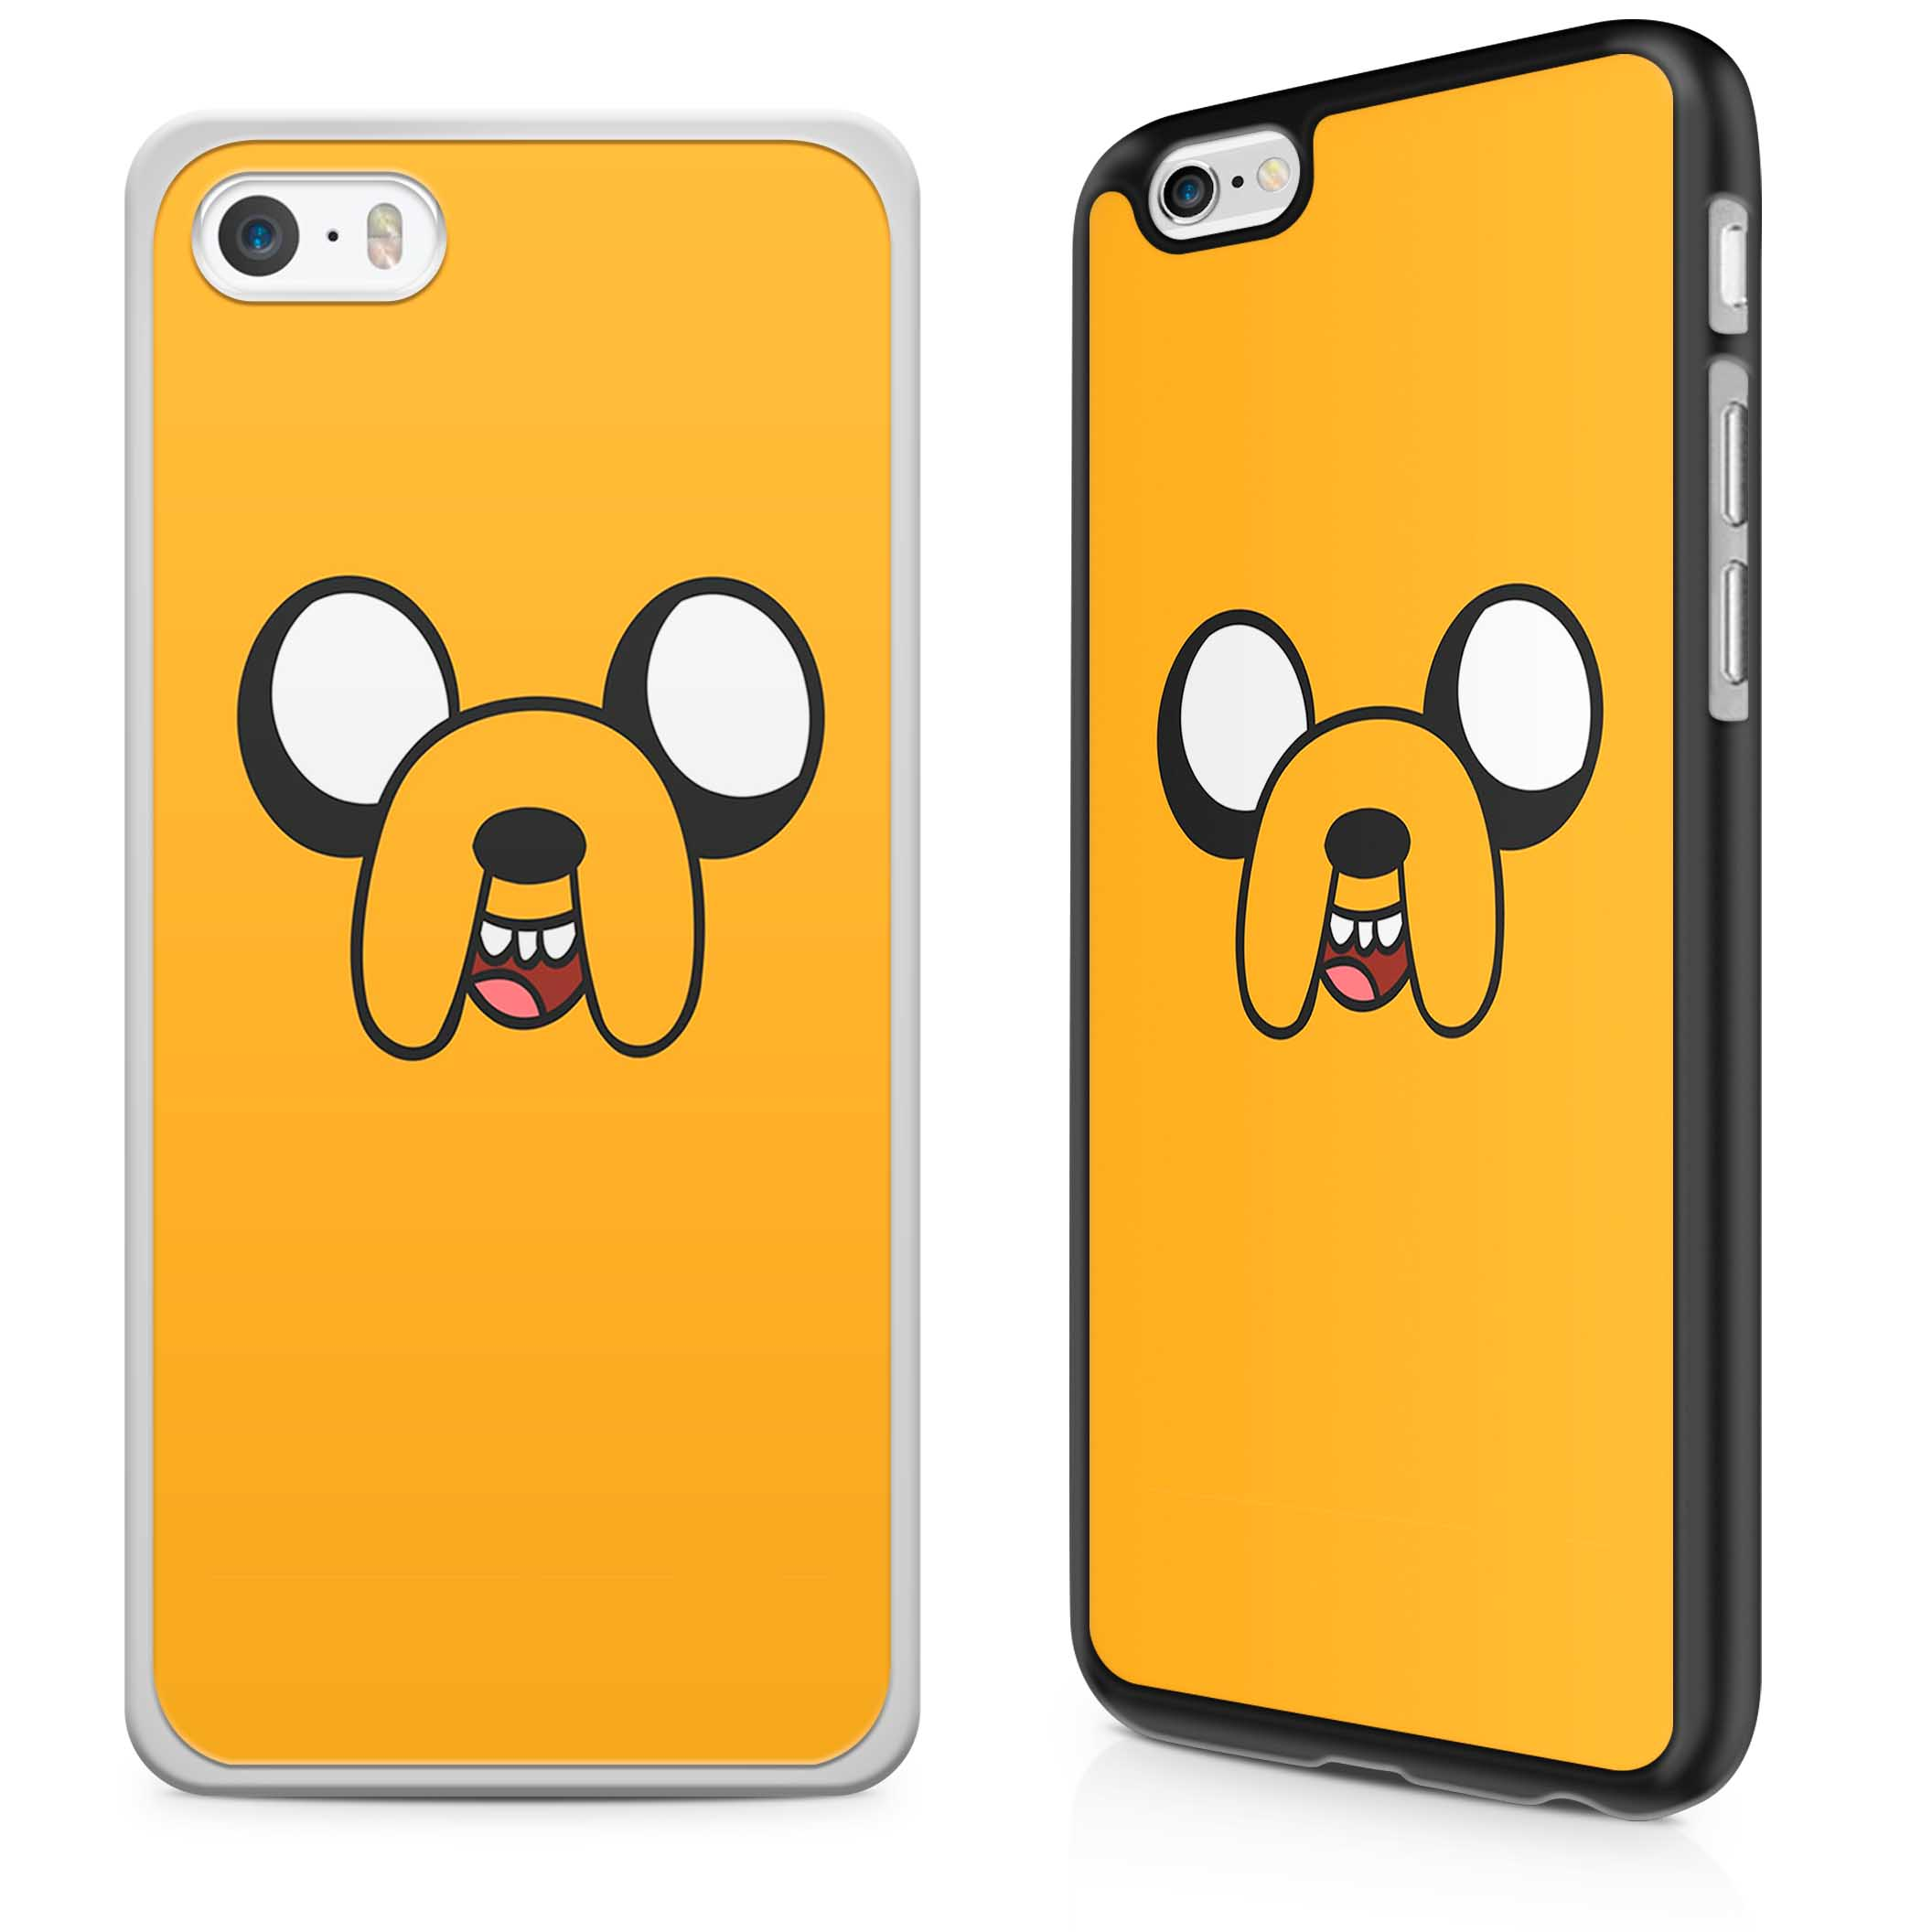 ... Time Phone Case Cover Finn Jake Beemo BMO LSP MVQ For Iphone FP : eBay